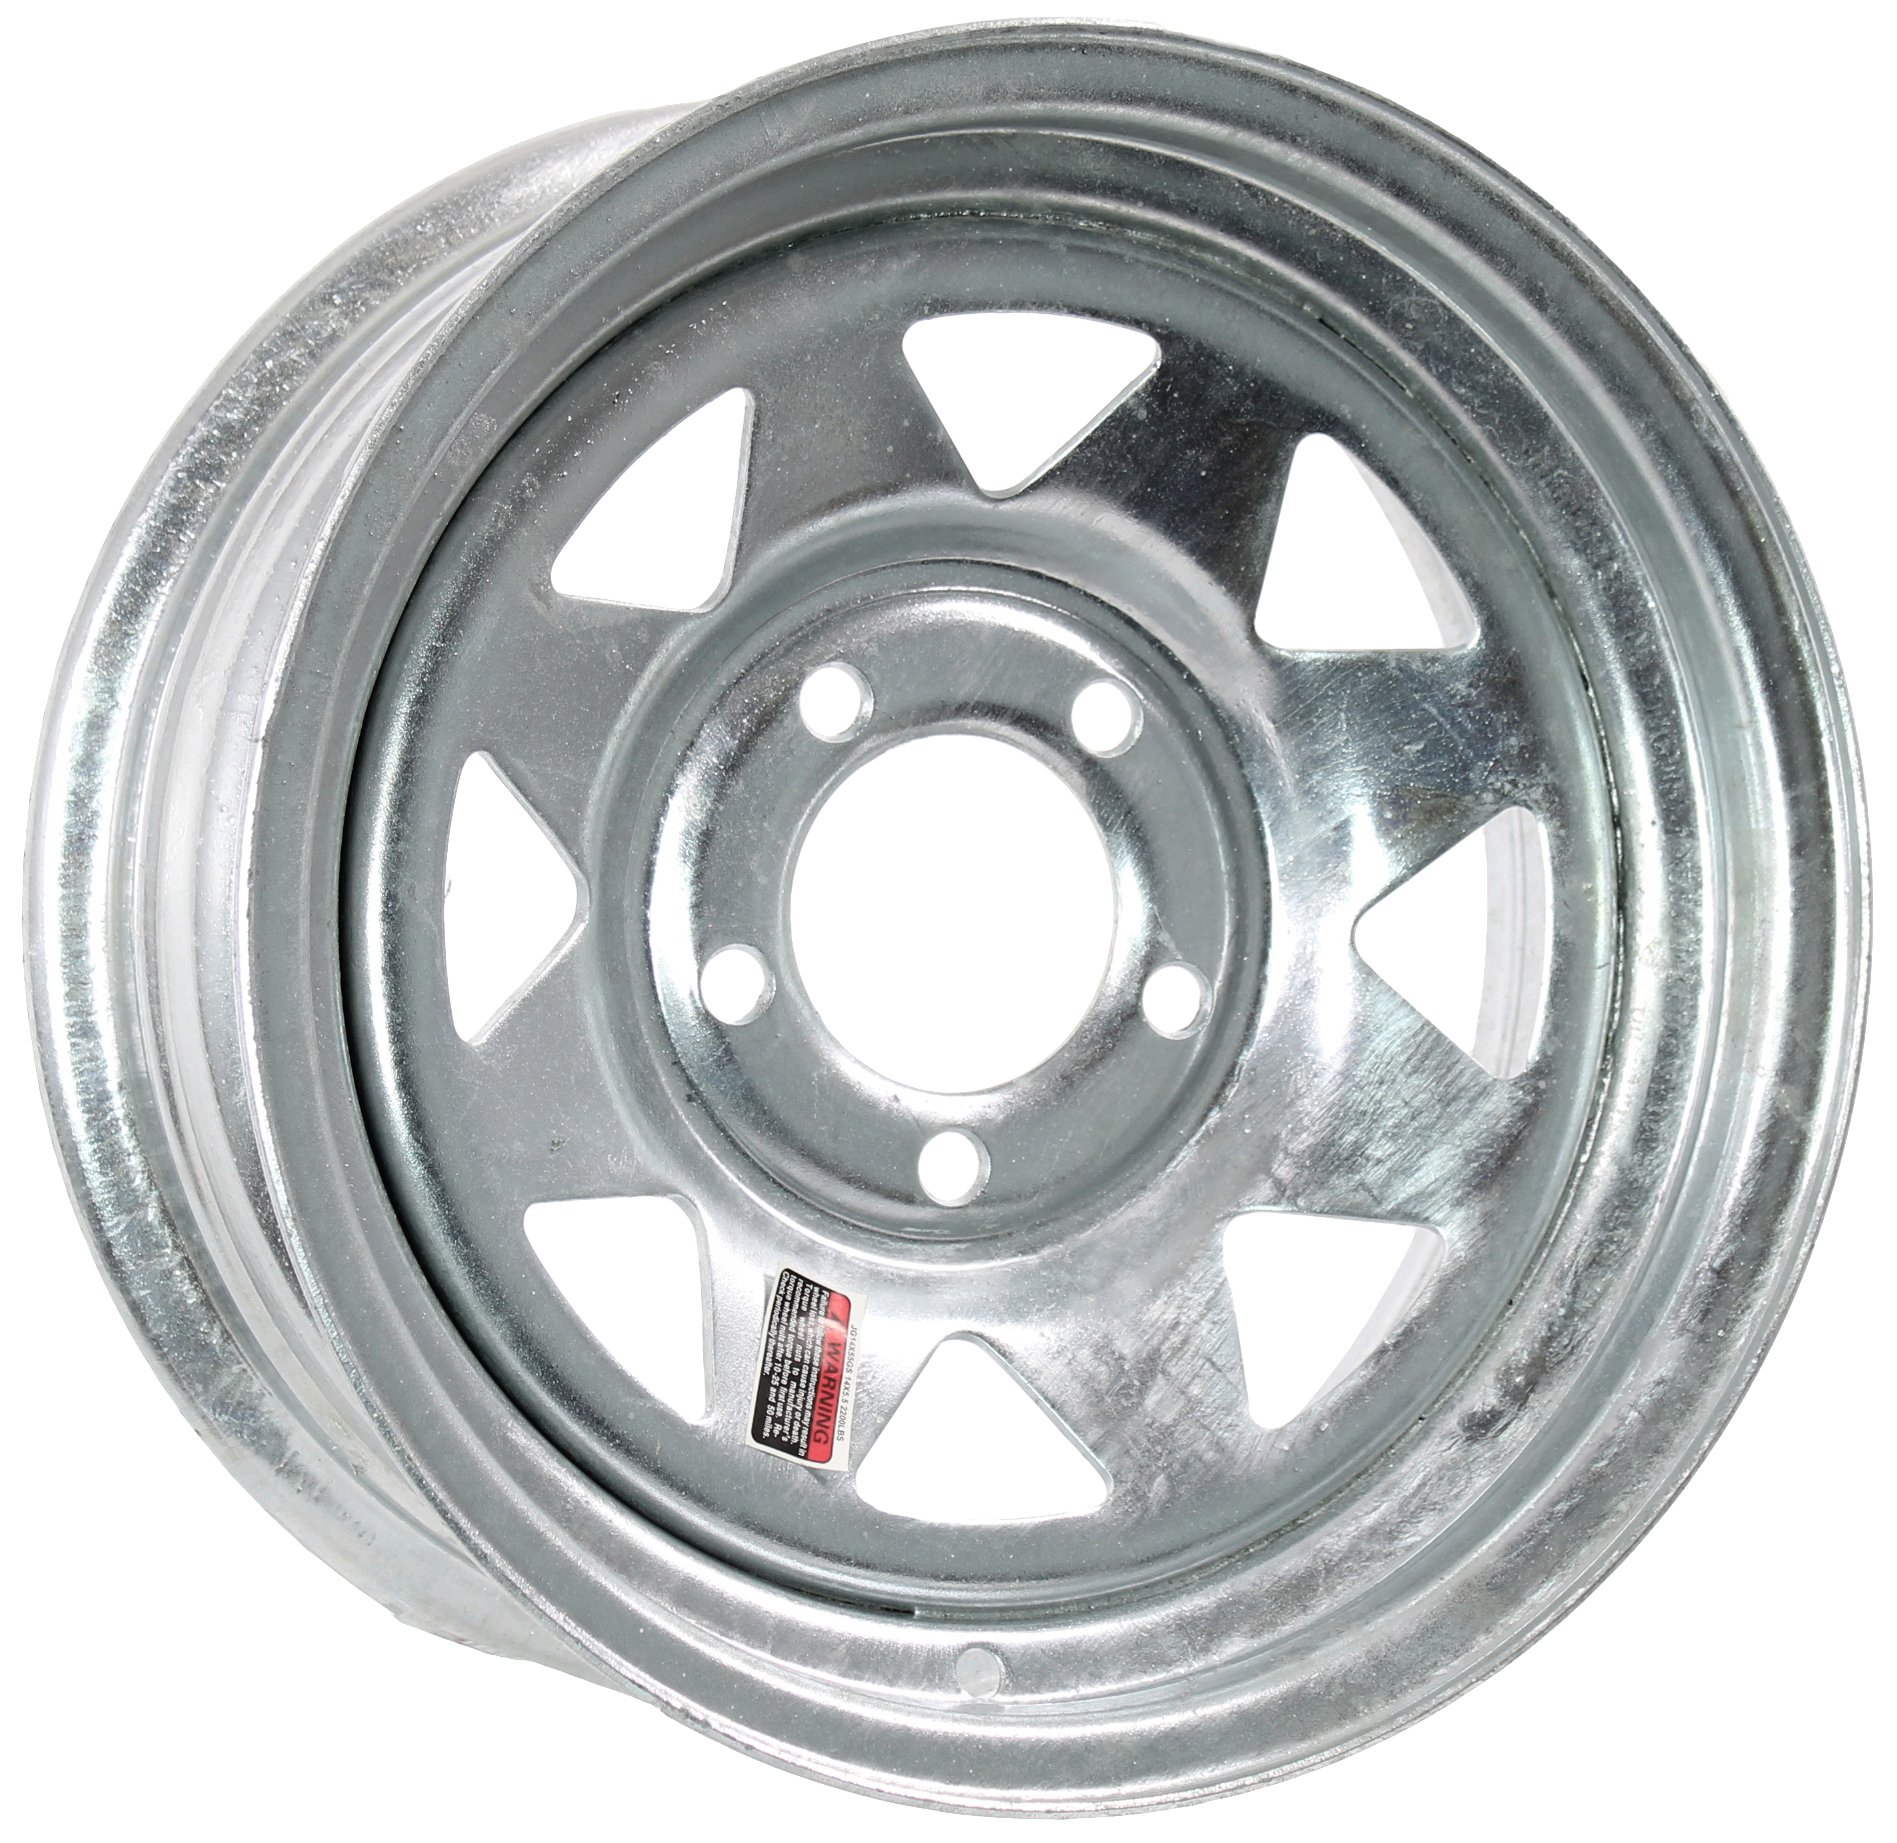 14x5.5 5-4.5 Galvanized Spoke Steel Trailer Wheel Image